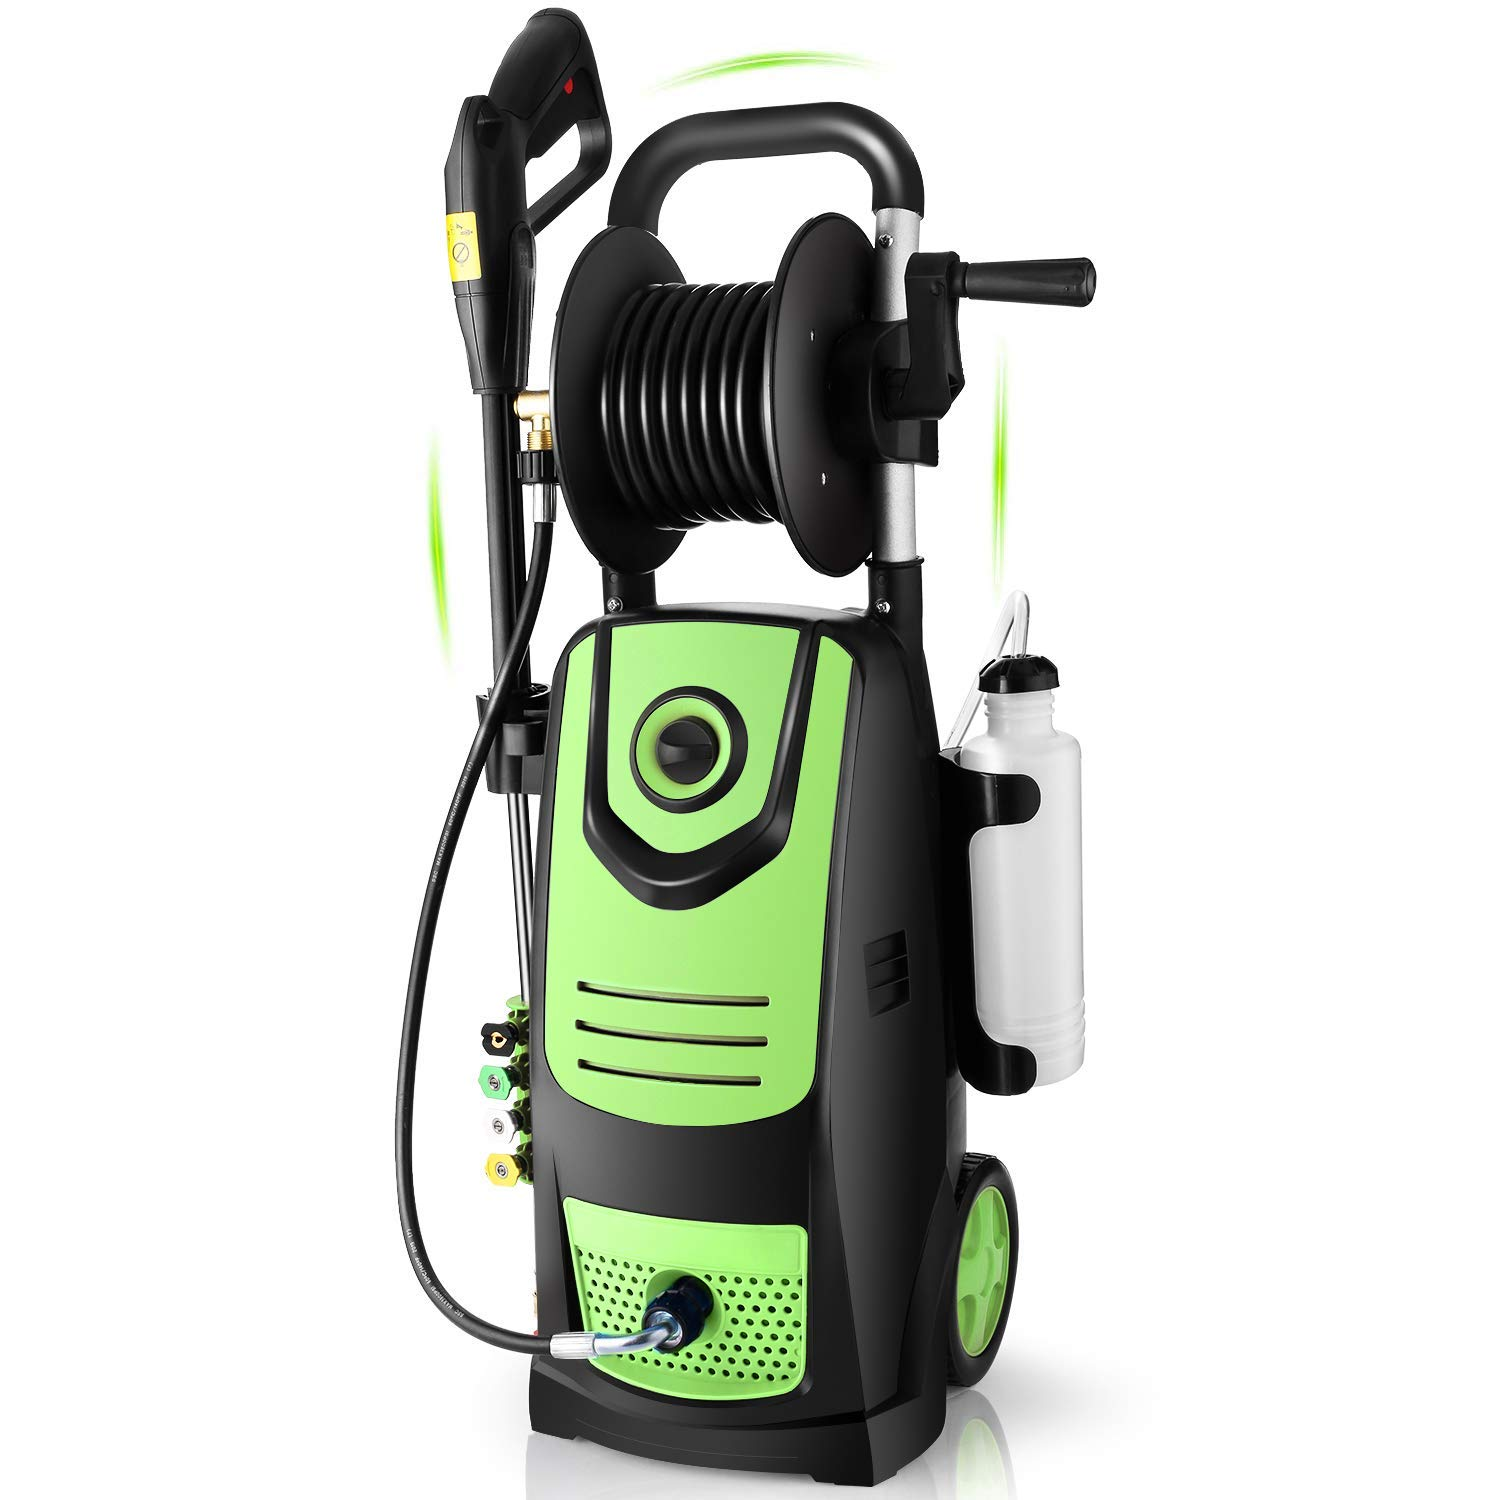 Suyncll 3800 PSI 2.8GPM Electric Pressure Washer Electric Power Washer with Soap Bottle and Hose Reel (Green)